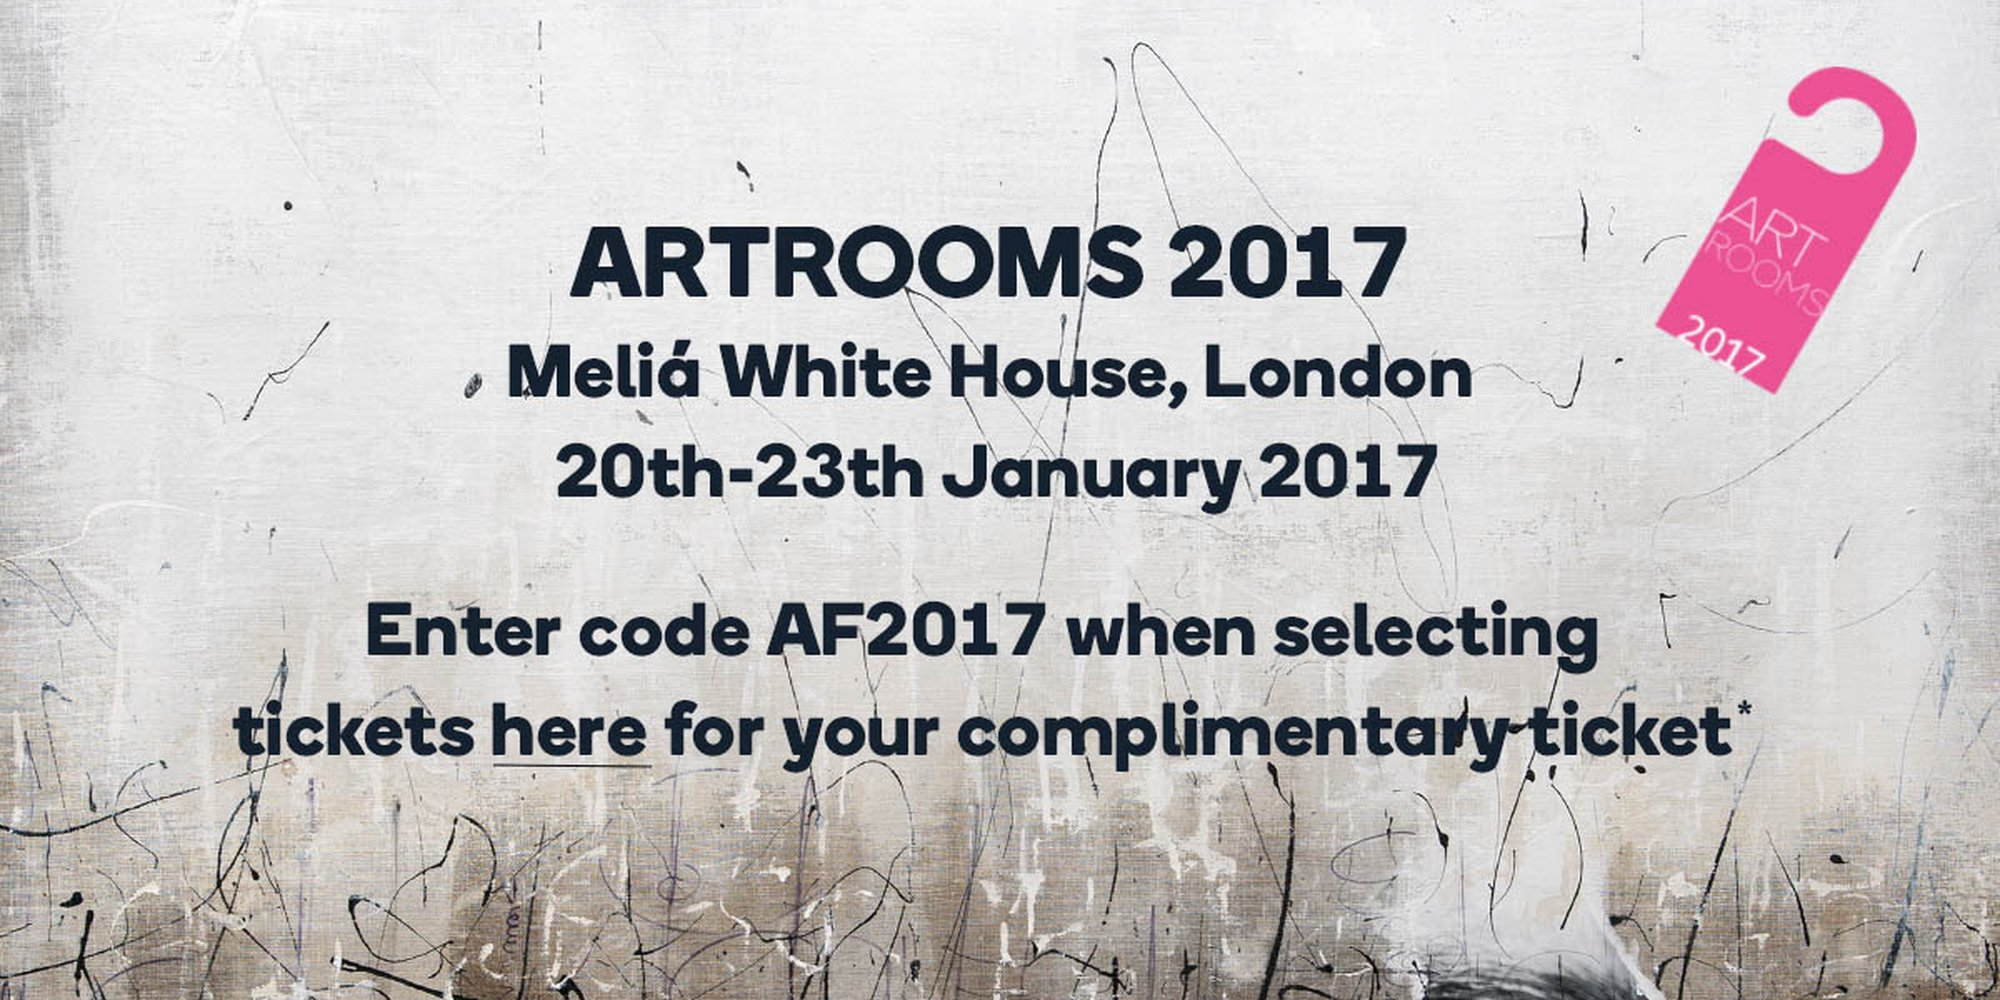 Artfinder is coming to ARTROOMS 2017